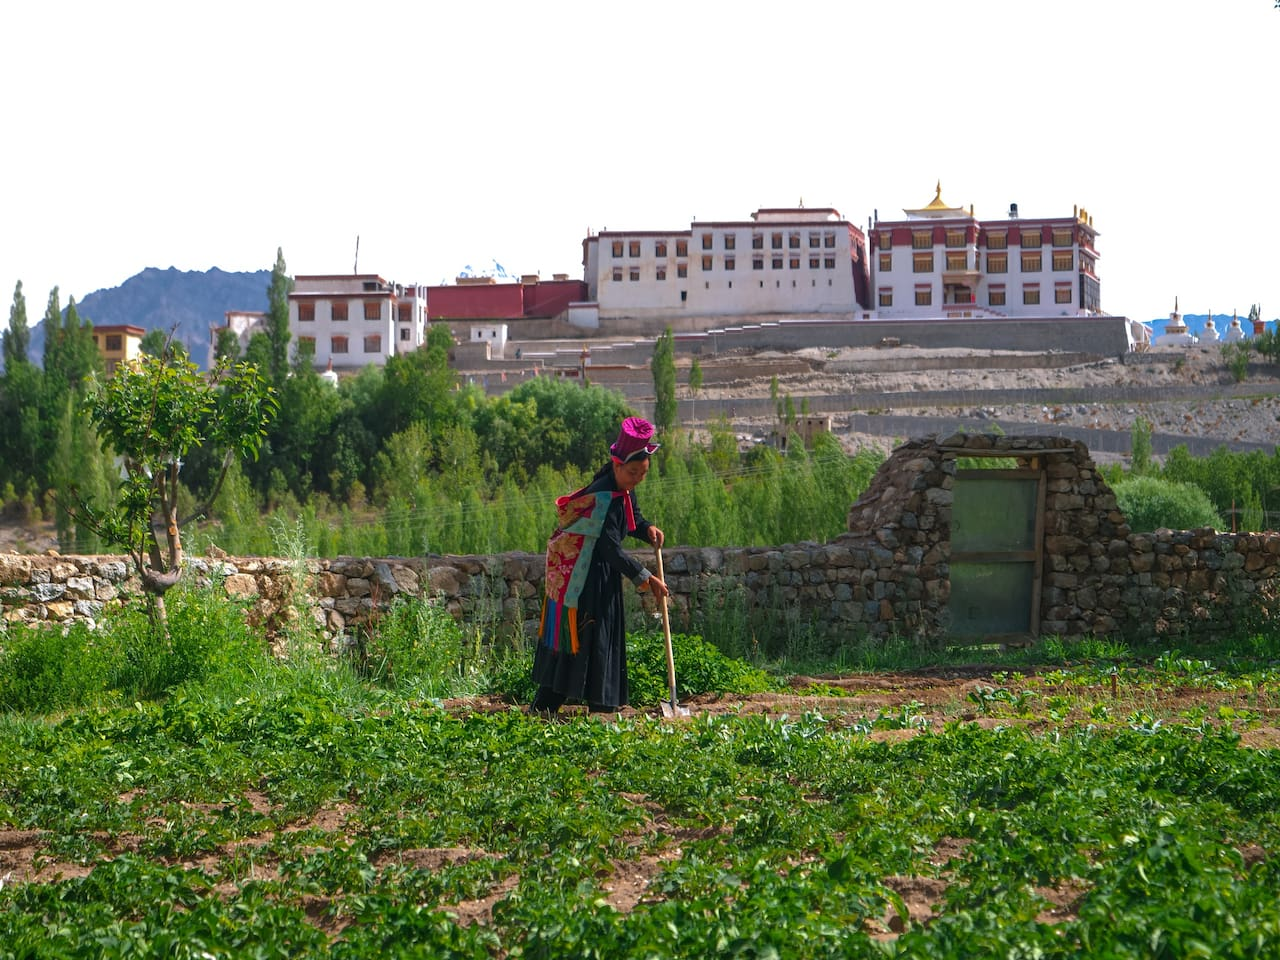 Farmstay Amaley tending to her vegetable garden overlooking the Phyang Monastery.